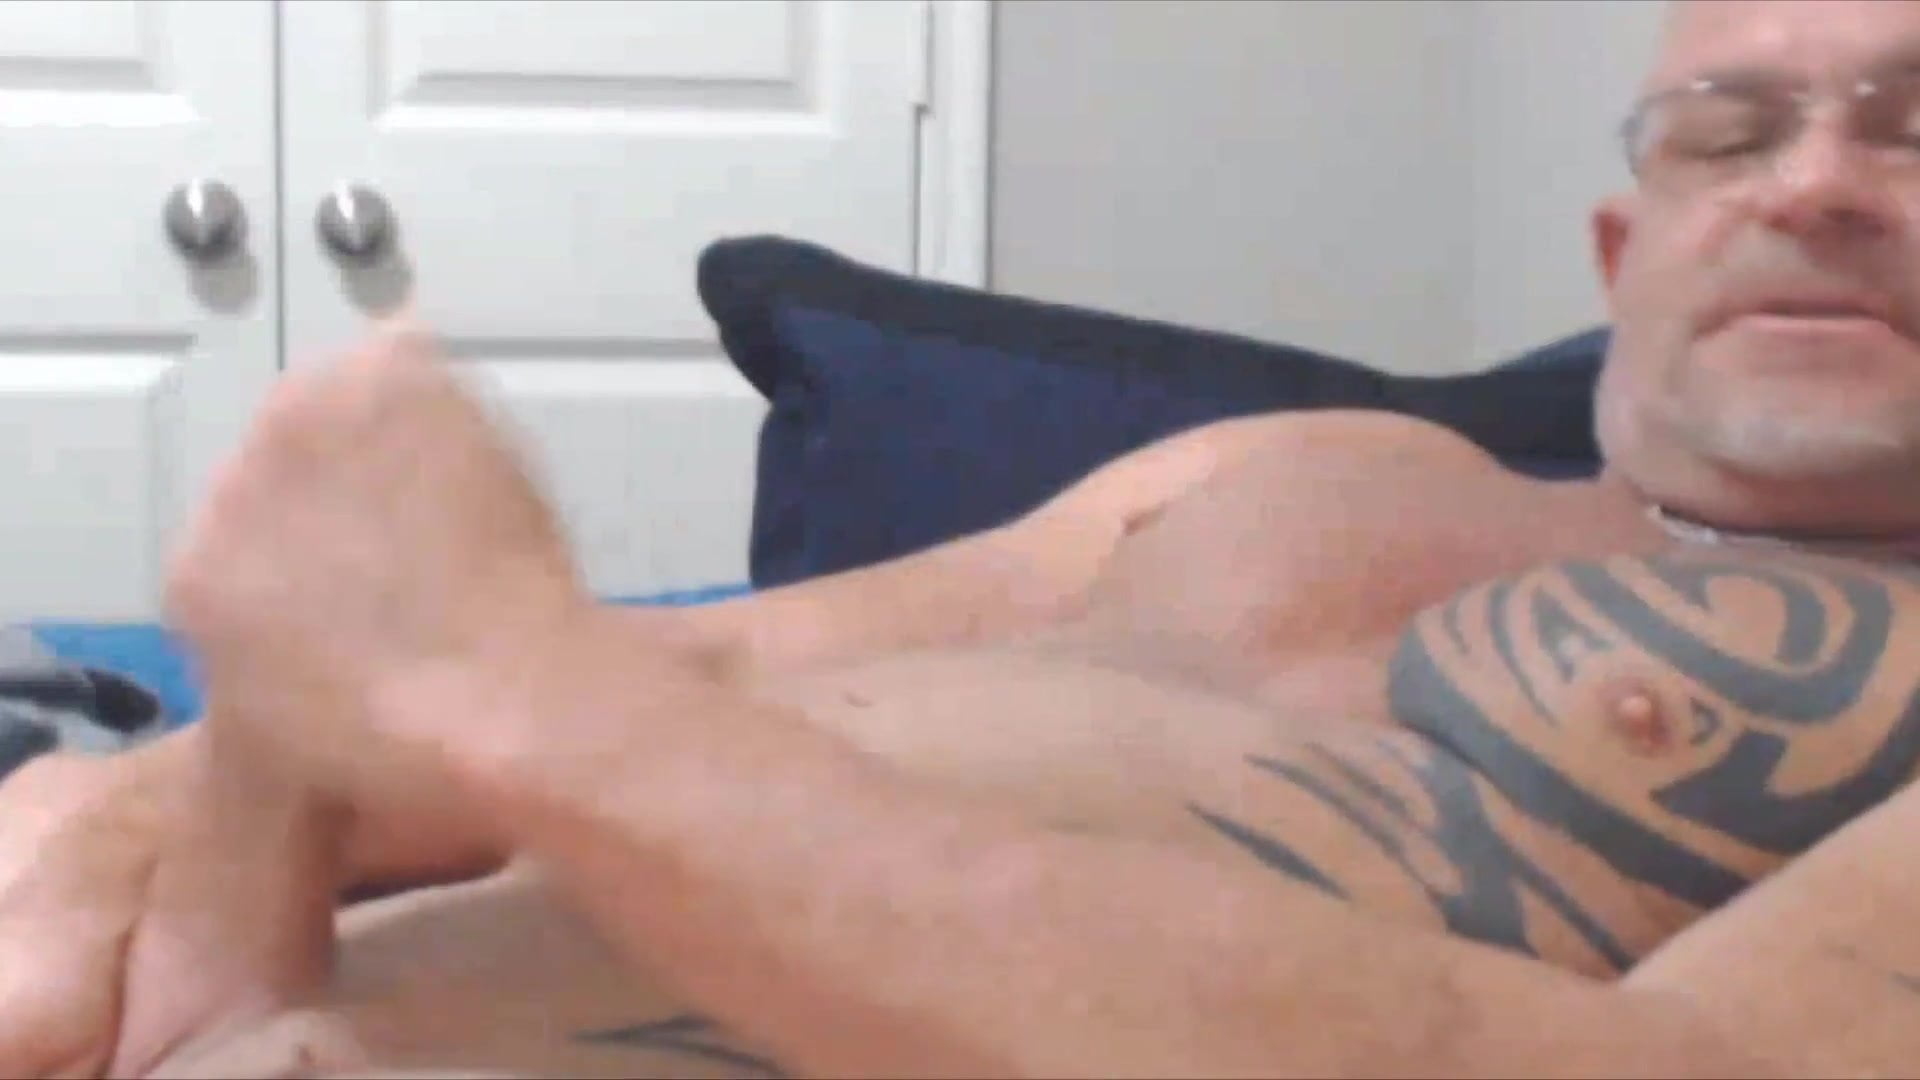 Inked Adult XXX film star TonyD here to tease and please